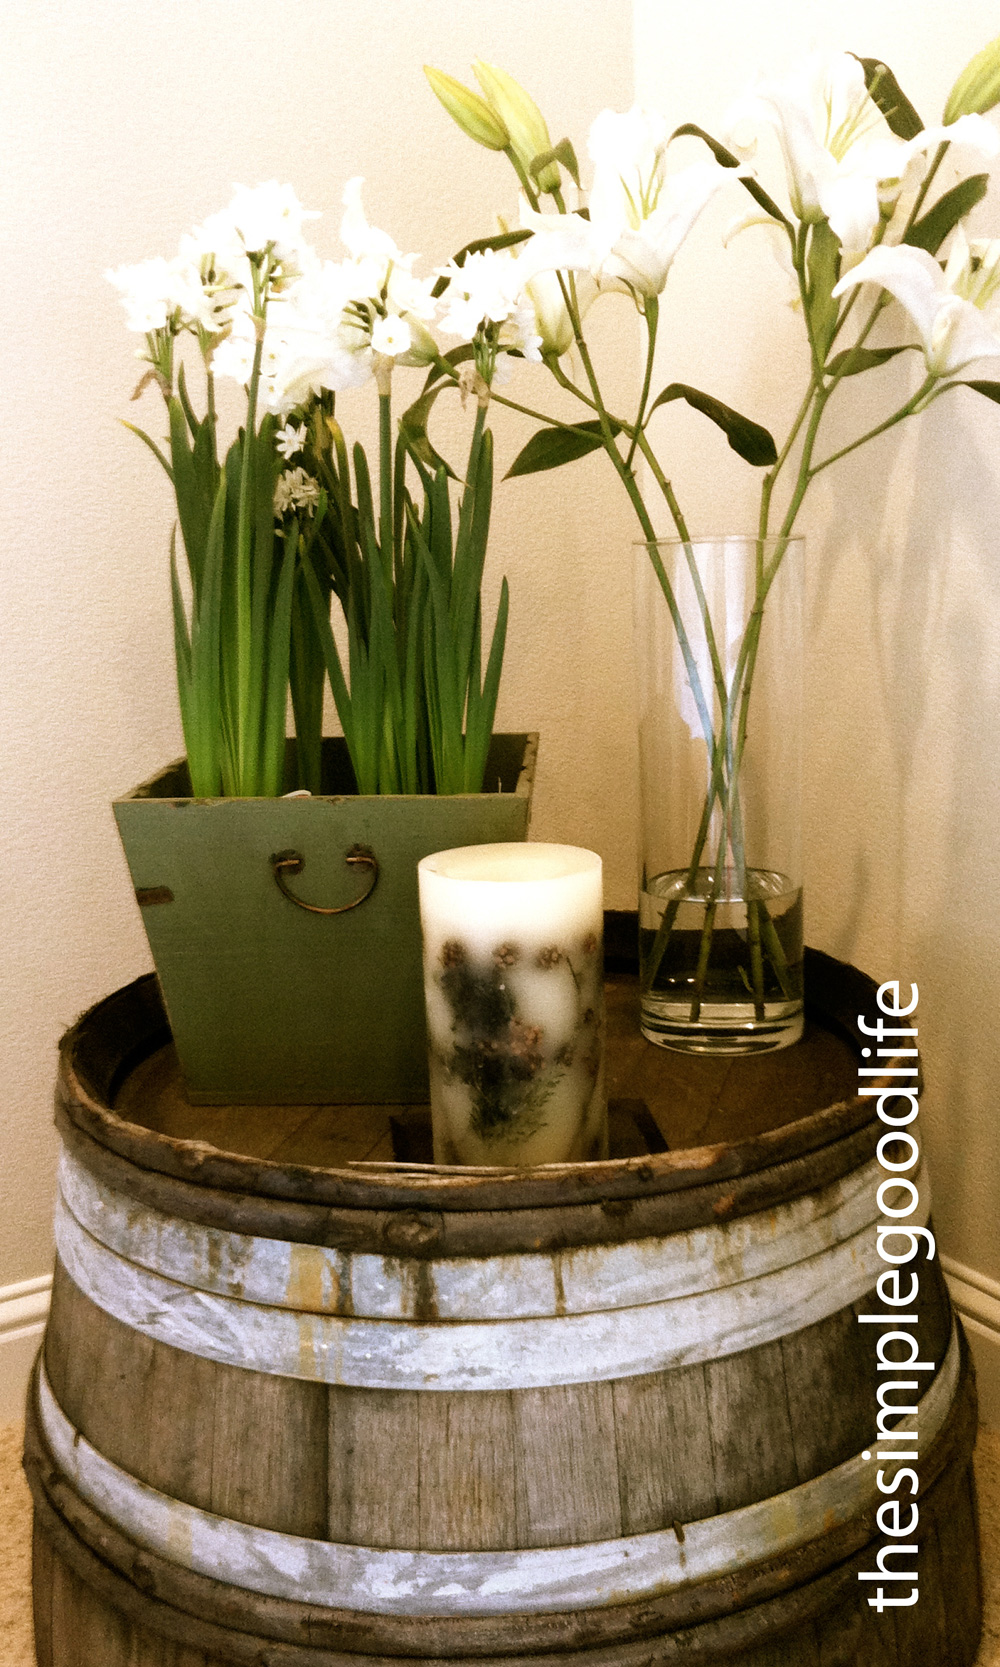 End table decor ideas photograph displaying 13 images for for End table decorating tips